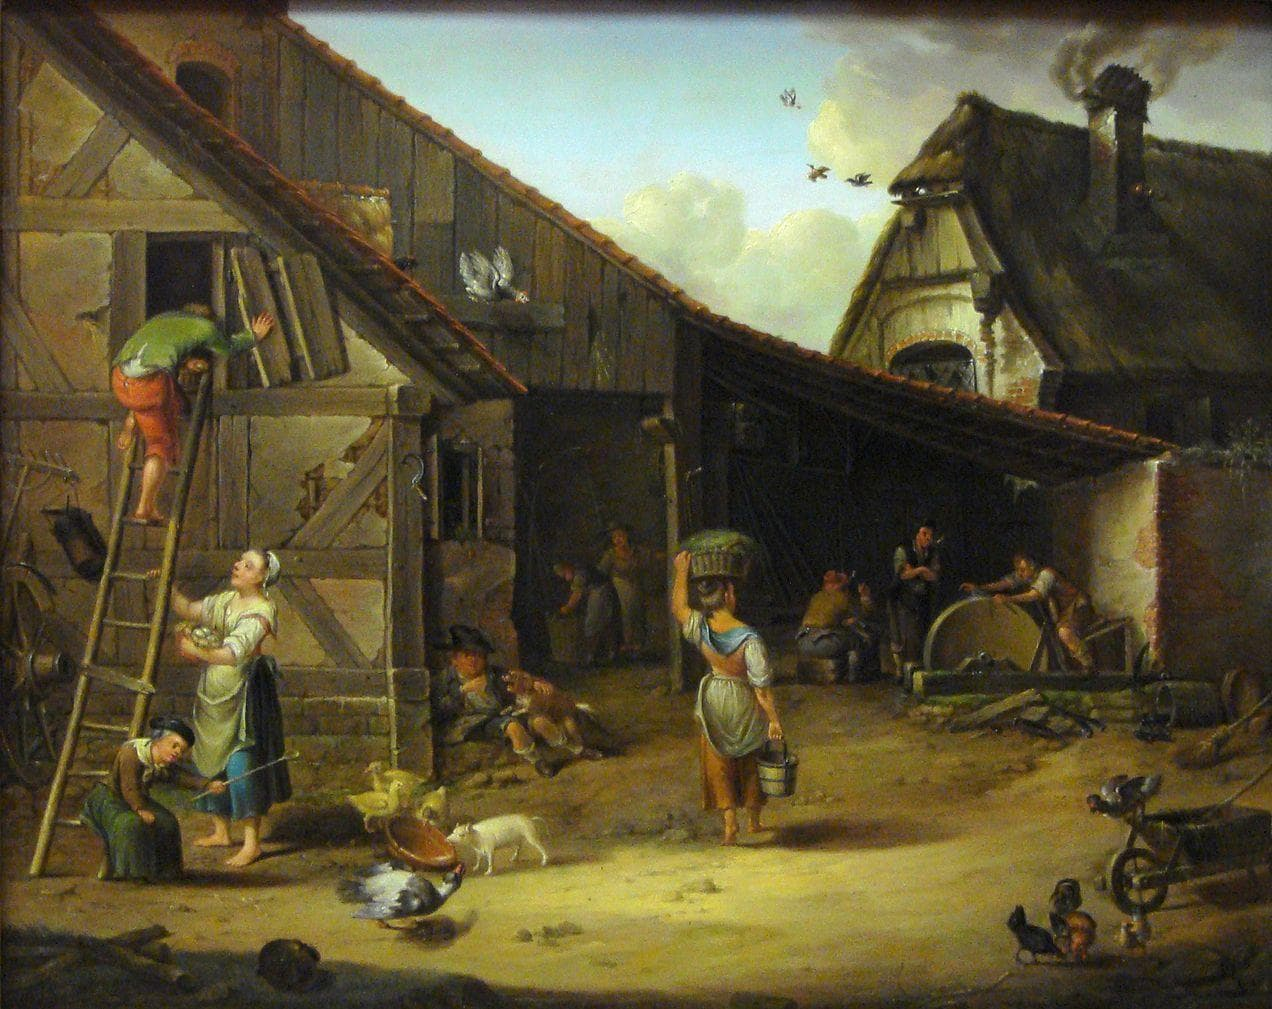 Random Medieval Peasants Actually Had A Lot Of Free Time